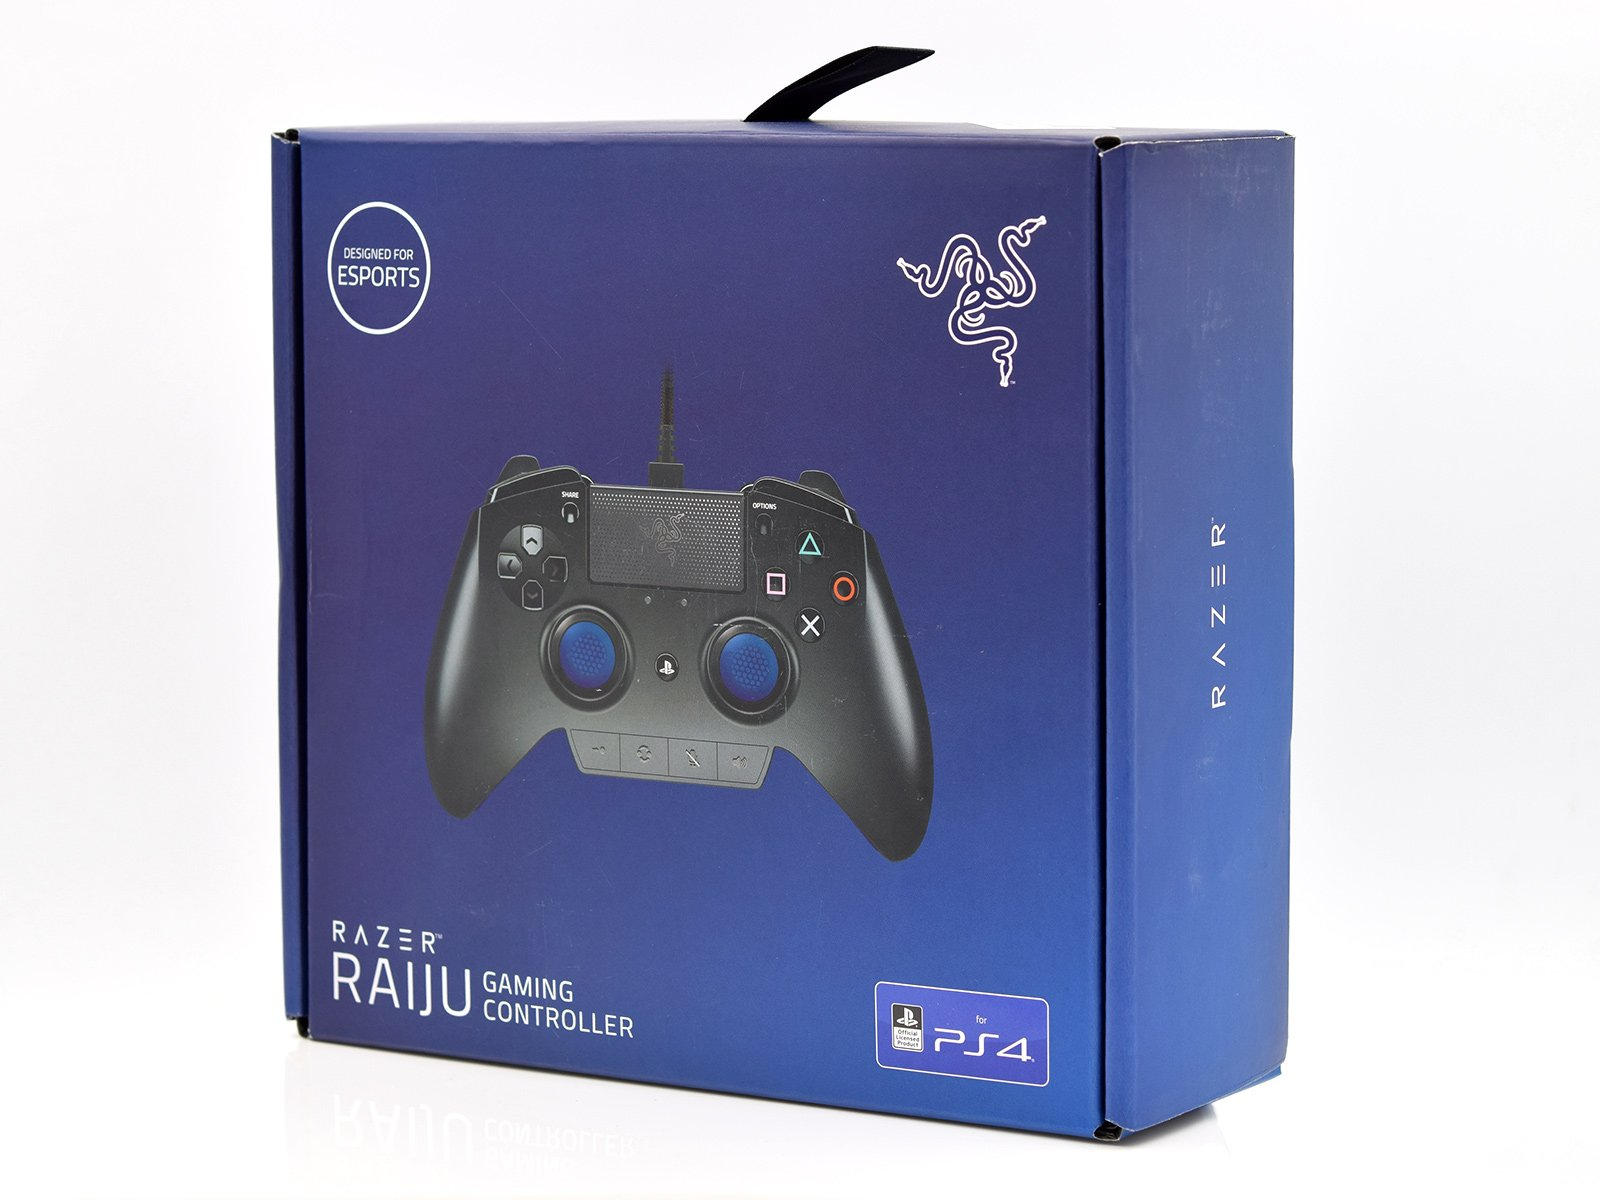 Razer Raiju Gaming Controller Box